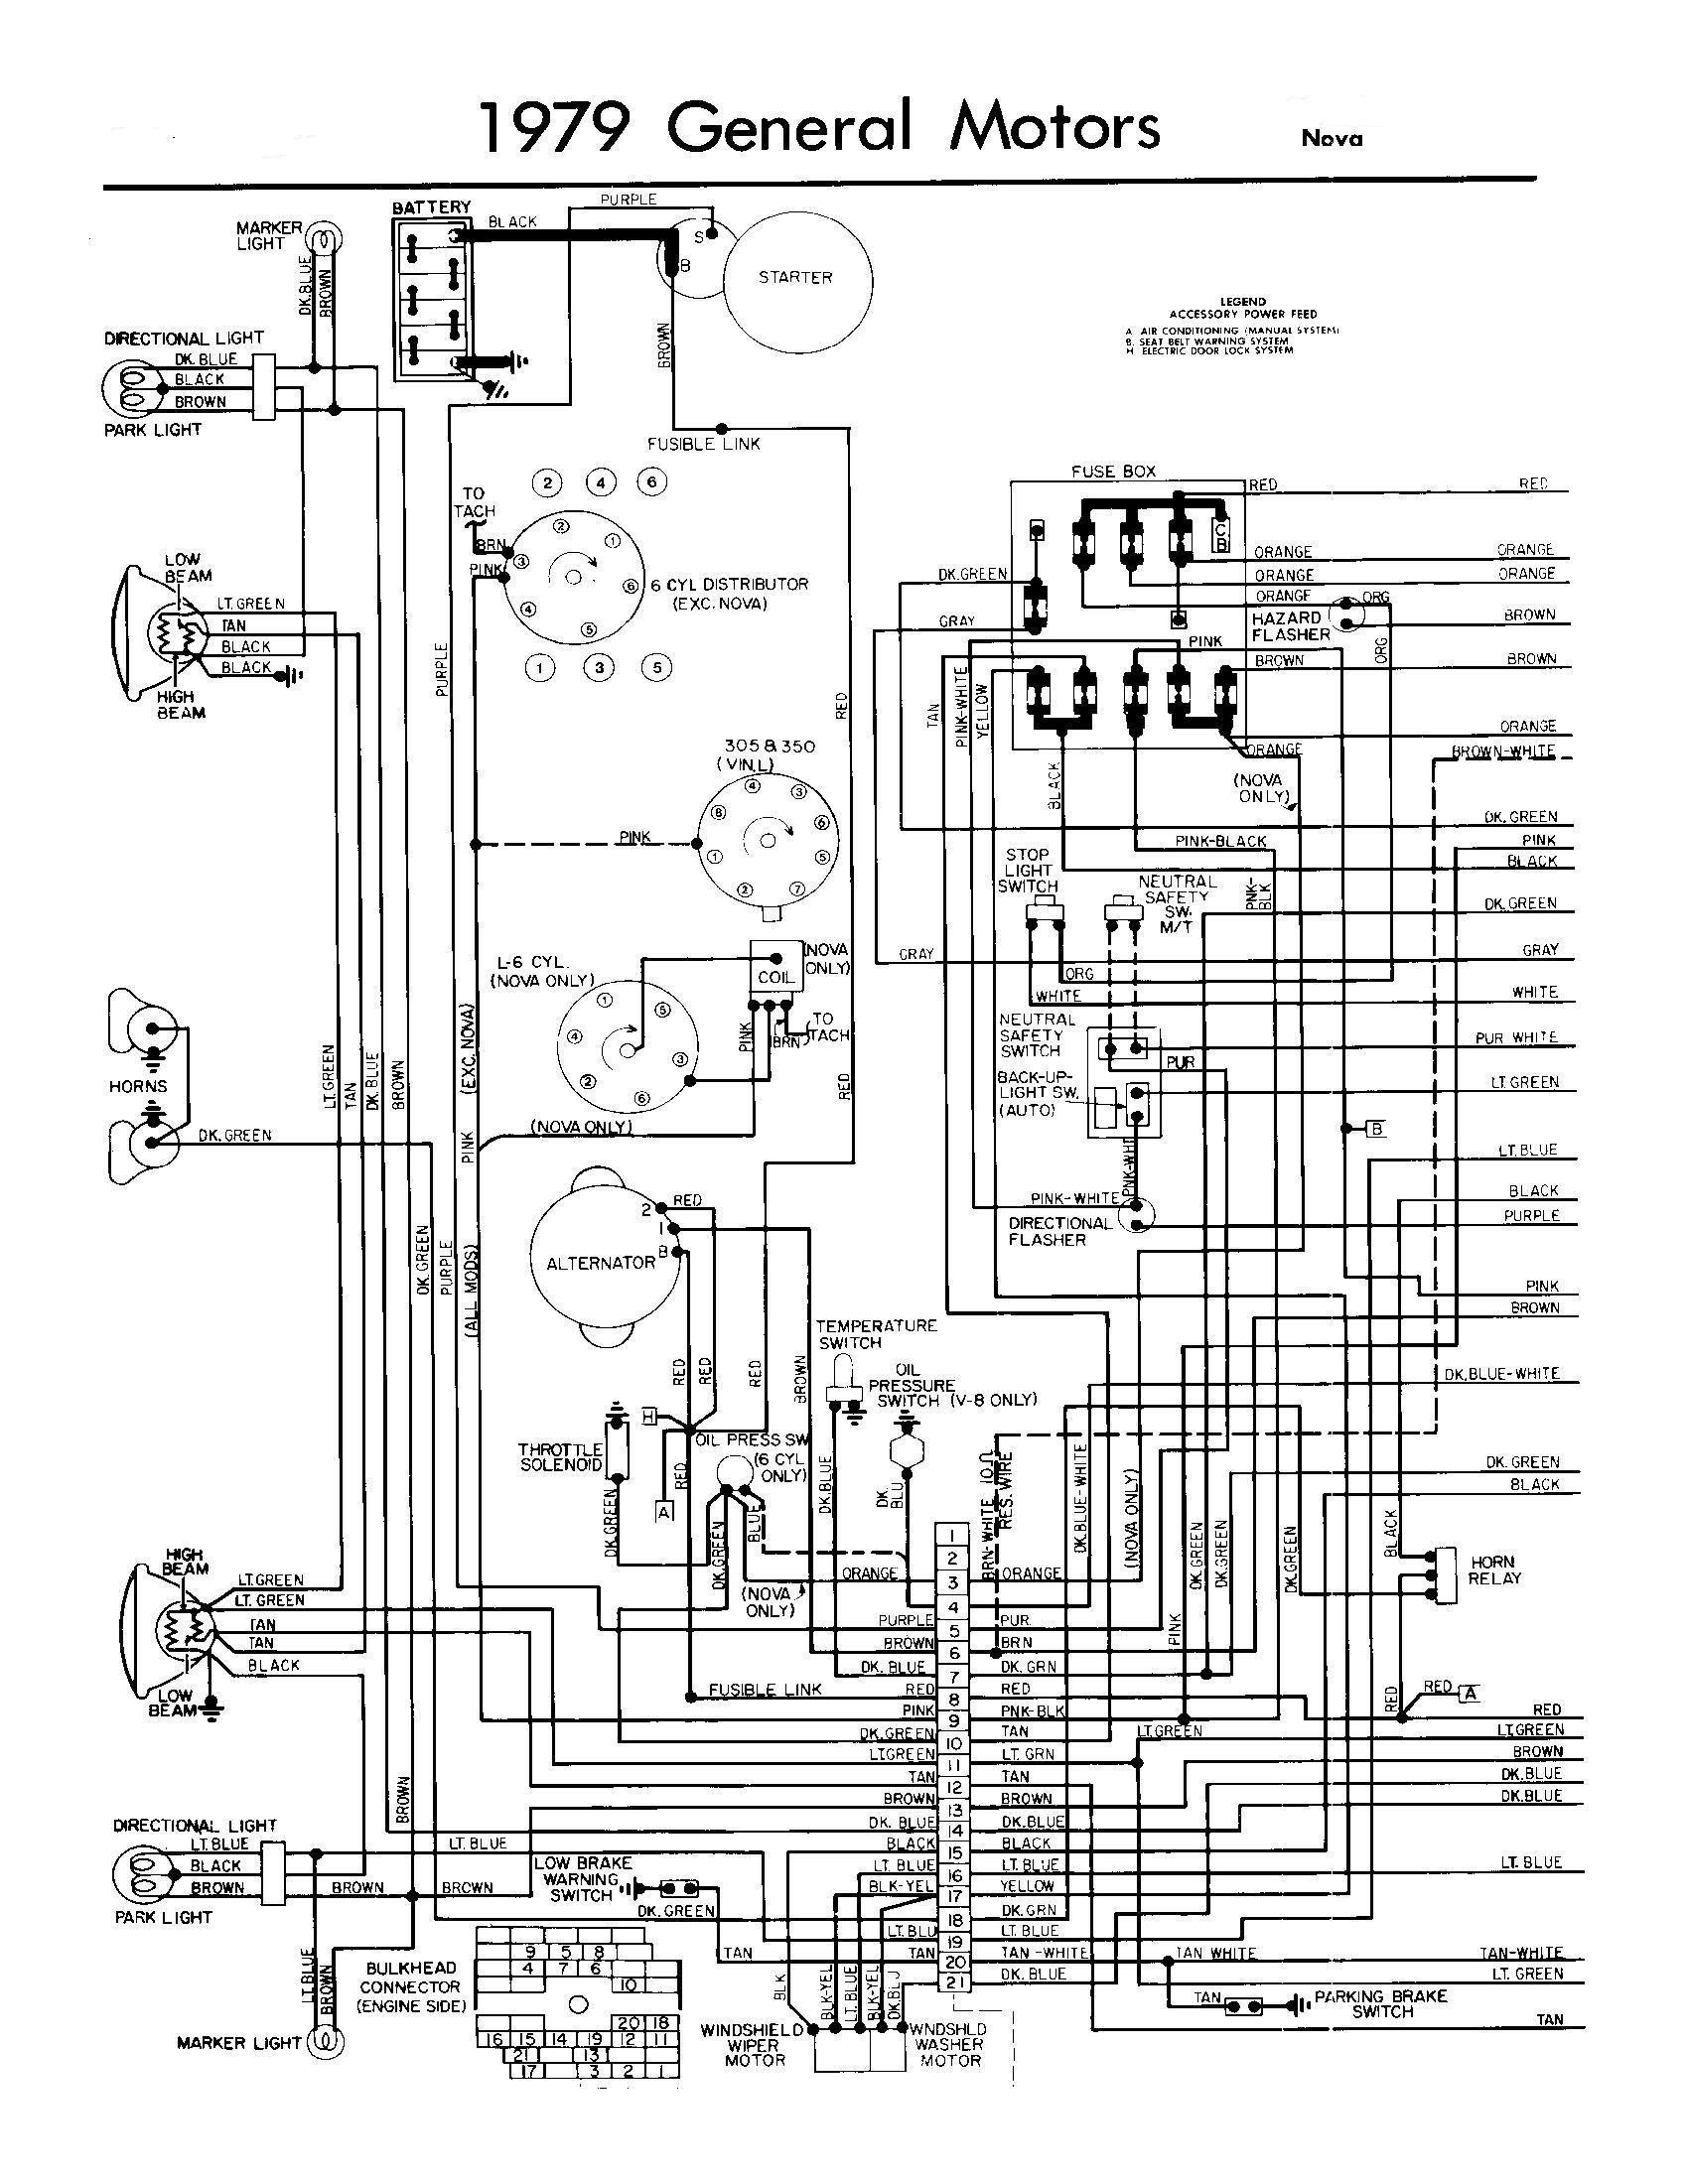 C8c 2007 Chevy Cobalt Fuse Box Diagram Wiring Resources